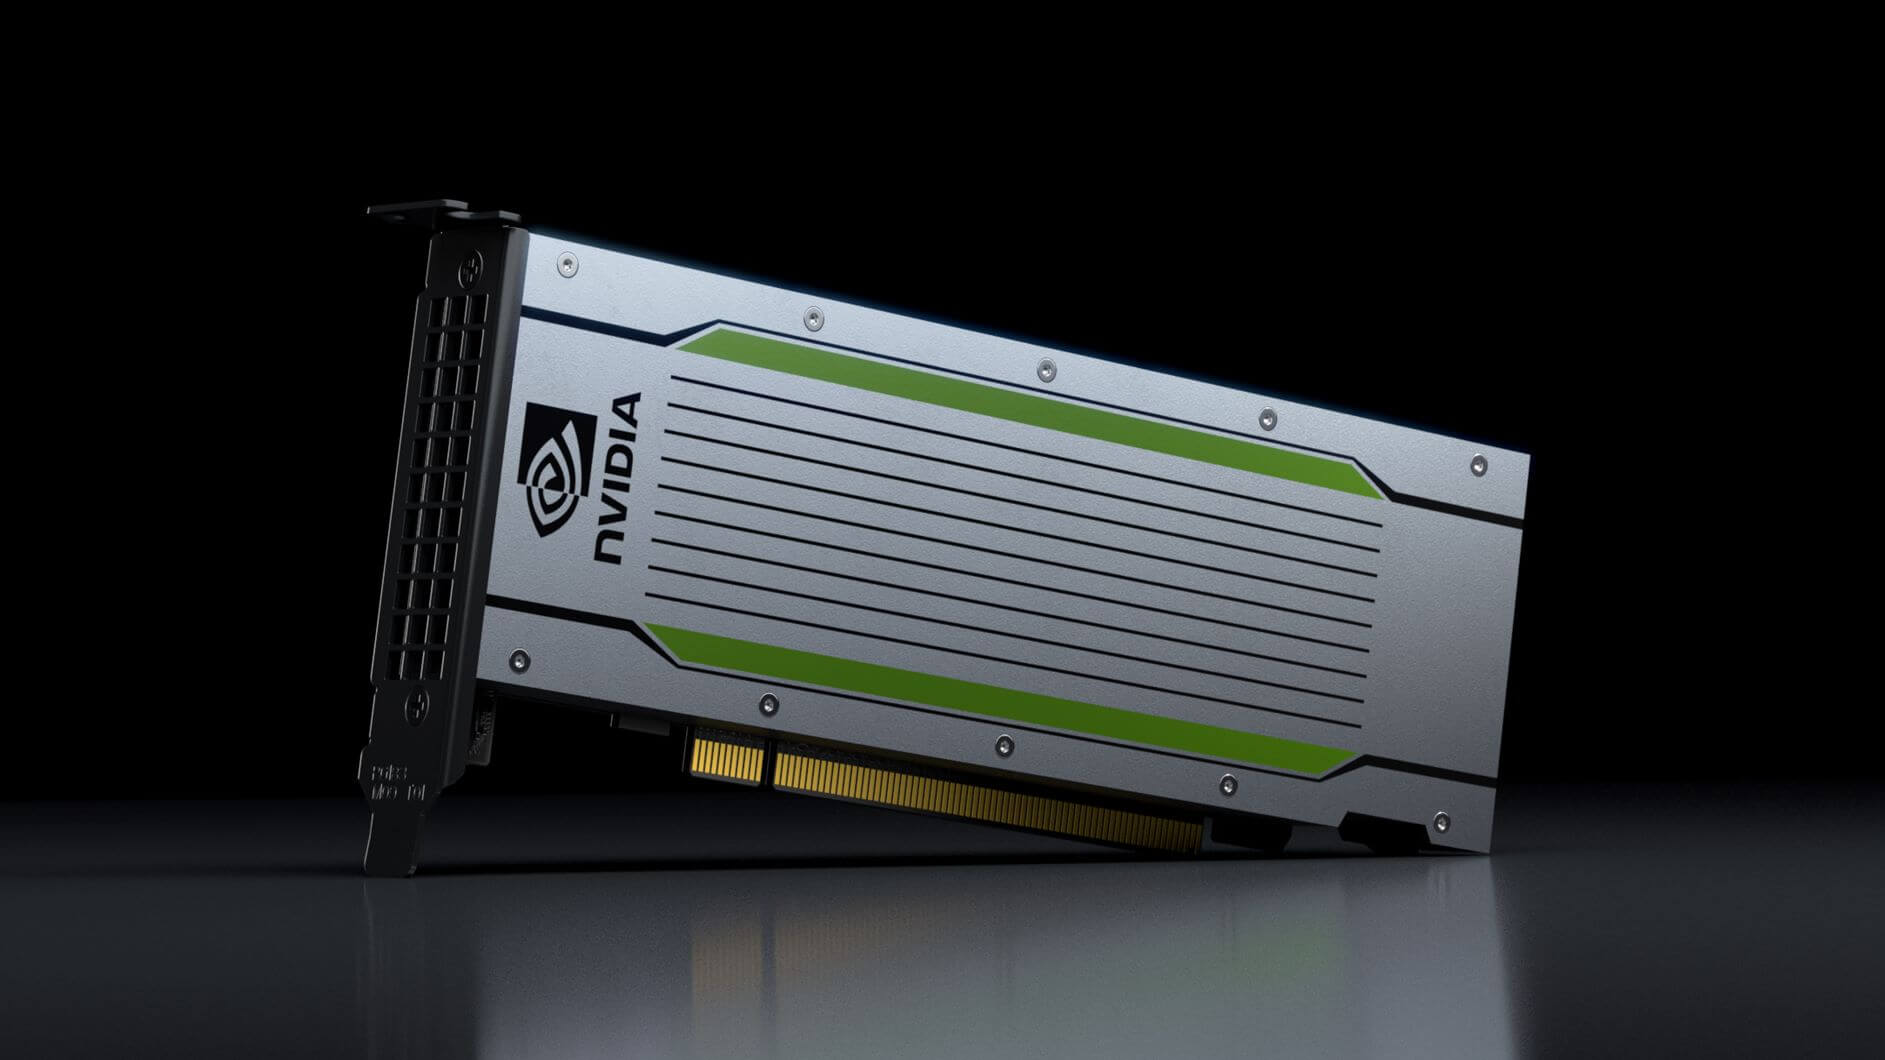 Nvidia stock takes a nosedive after disappointing earnings report